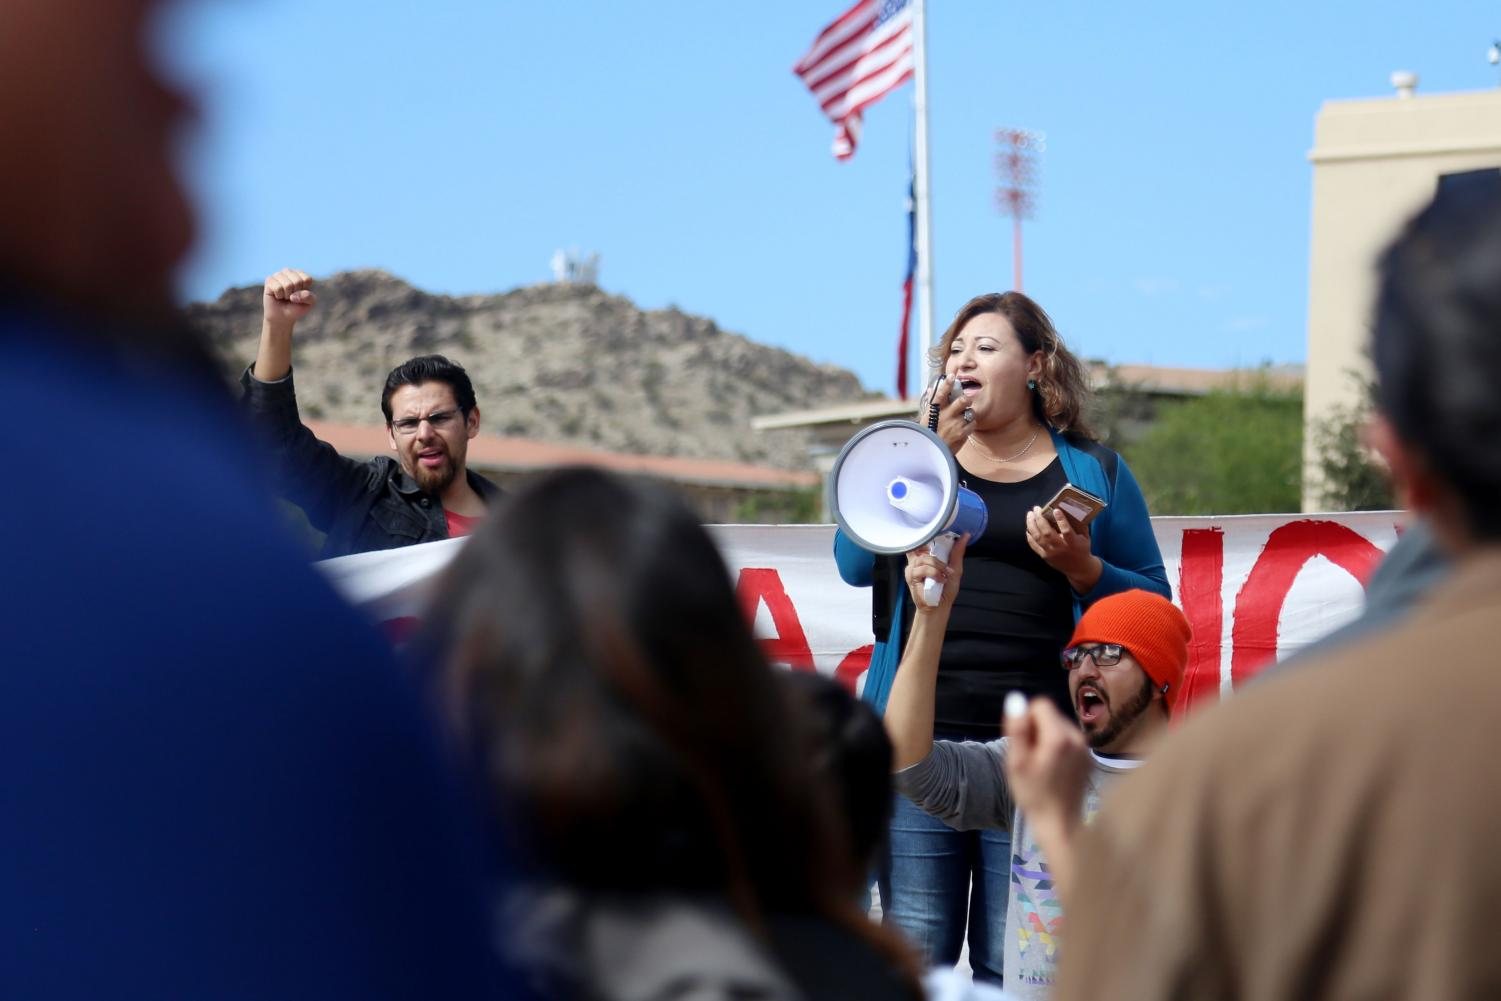 Protesters+also+called+out+for+Congressman+Will+Hurd%2C+R-Tx%2C+to+show+public+support+for+DACA+recipients+and+the+Dream+Act.